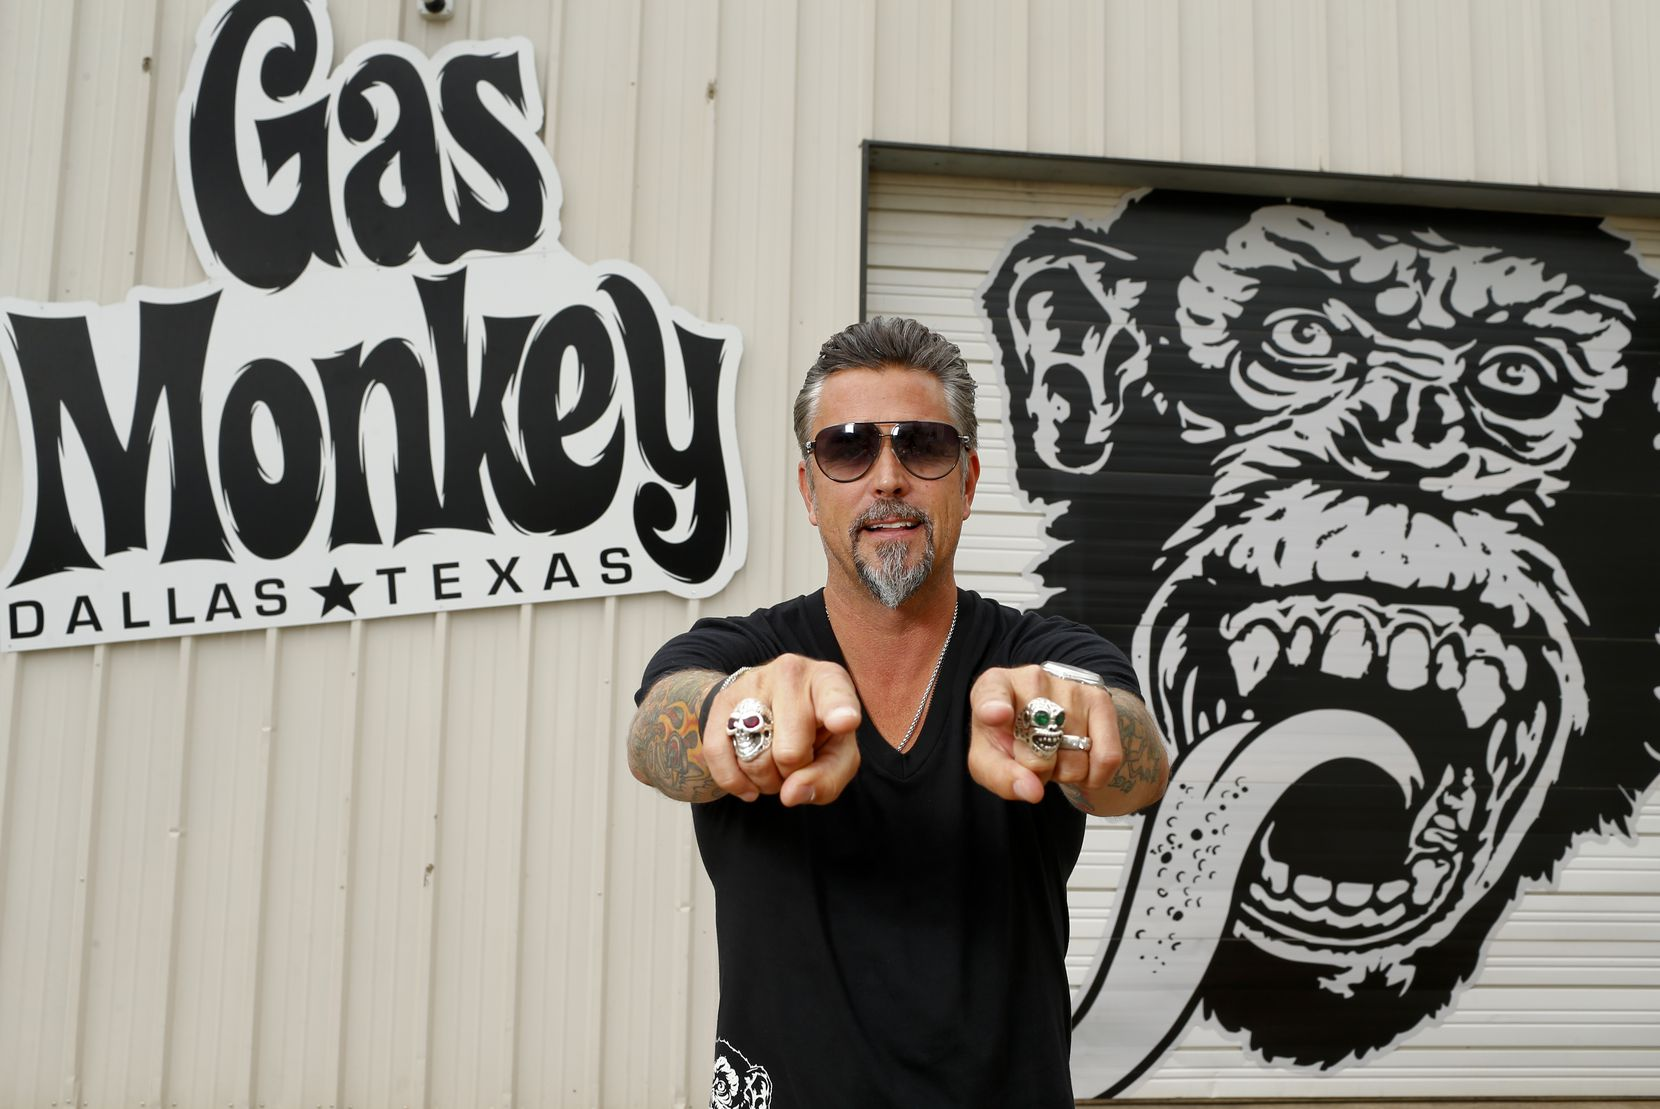 Richard Rawlings of Gas Monkey Garage is the star of cable TV show 'Fast 'n Loud.'